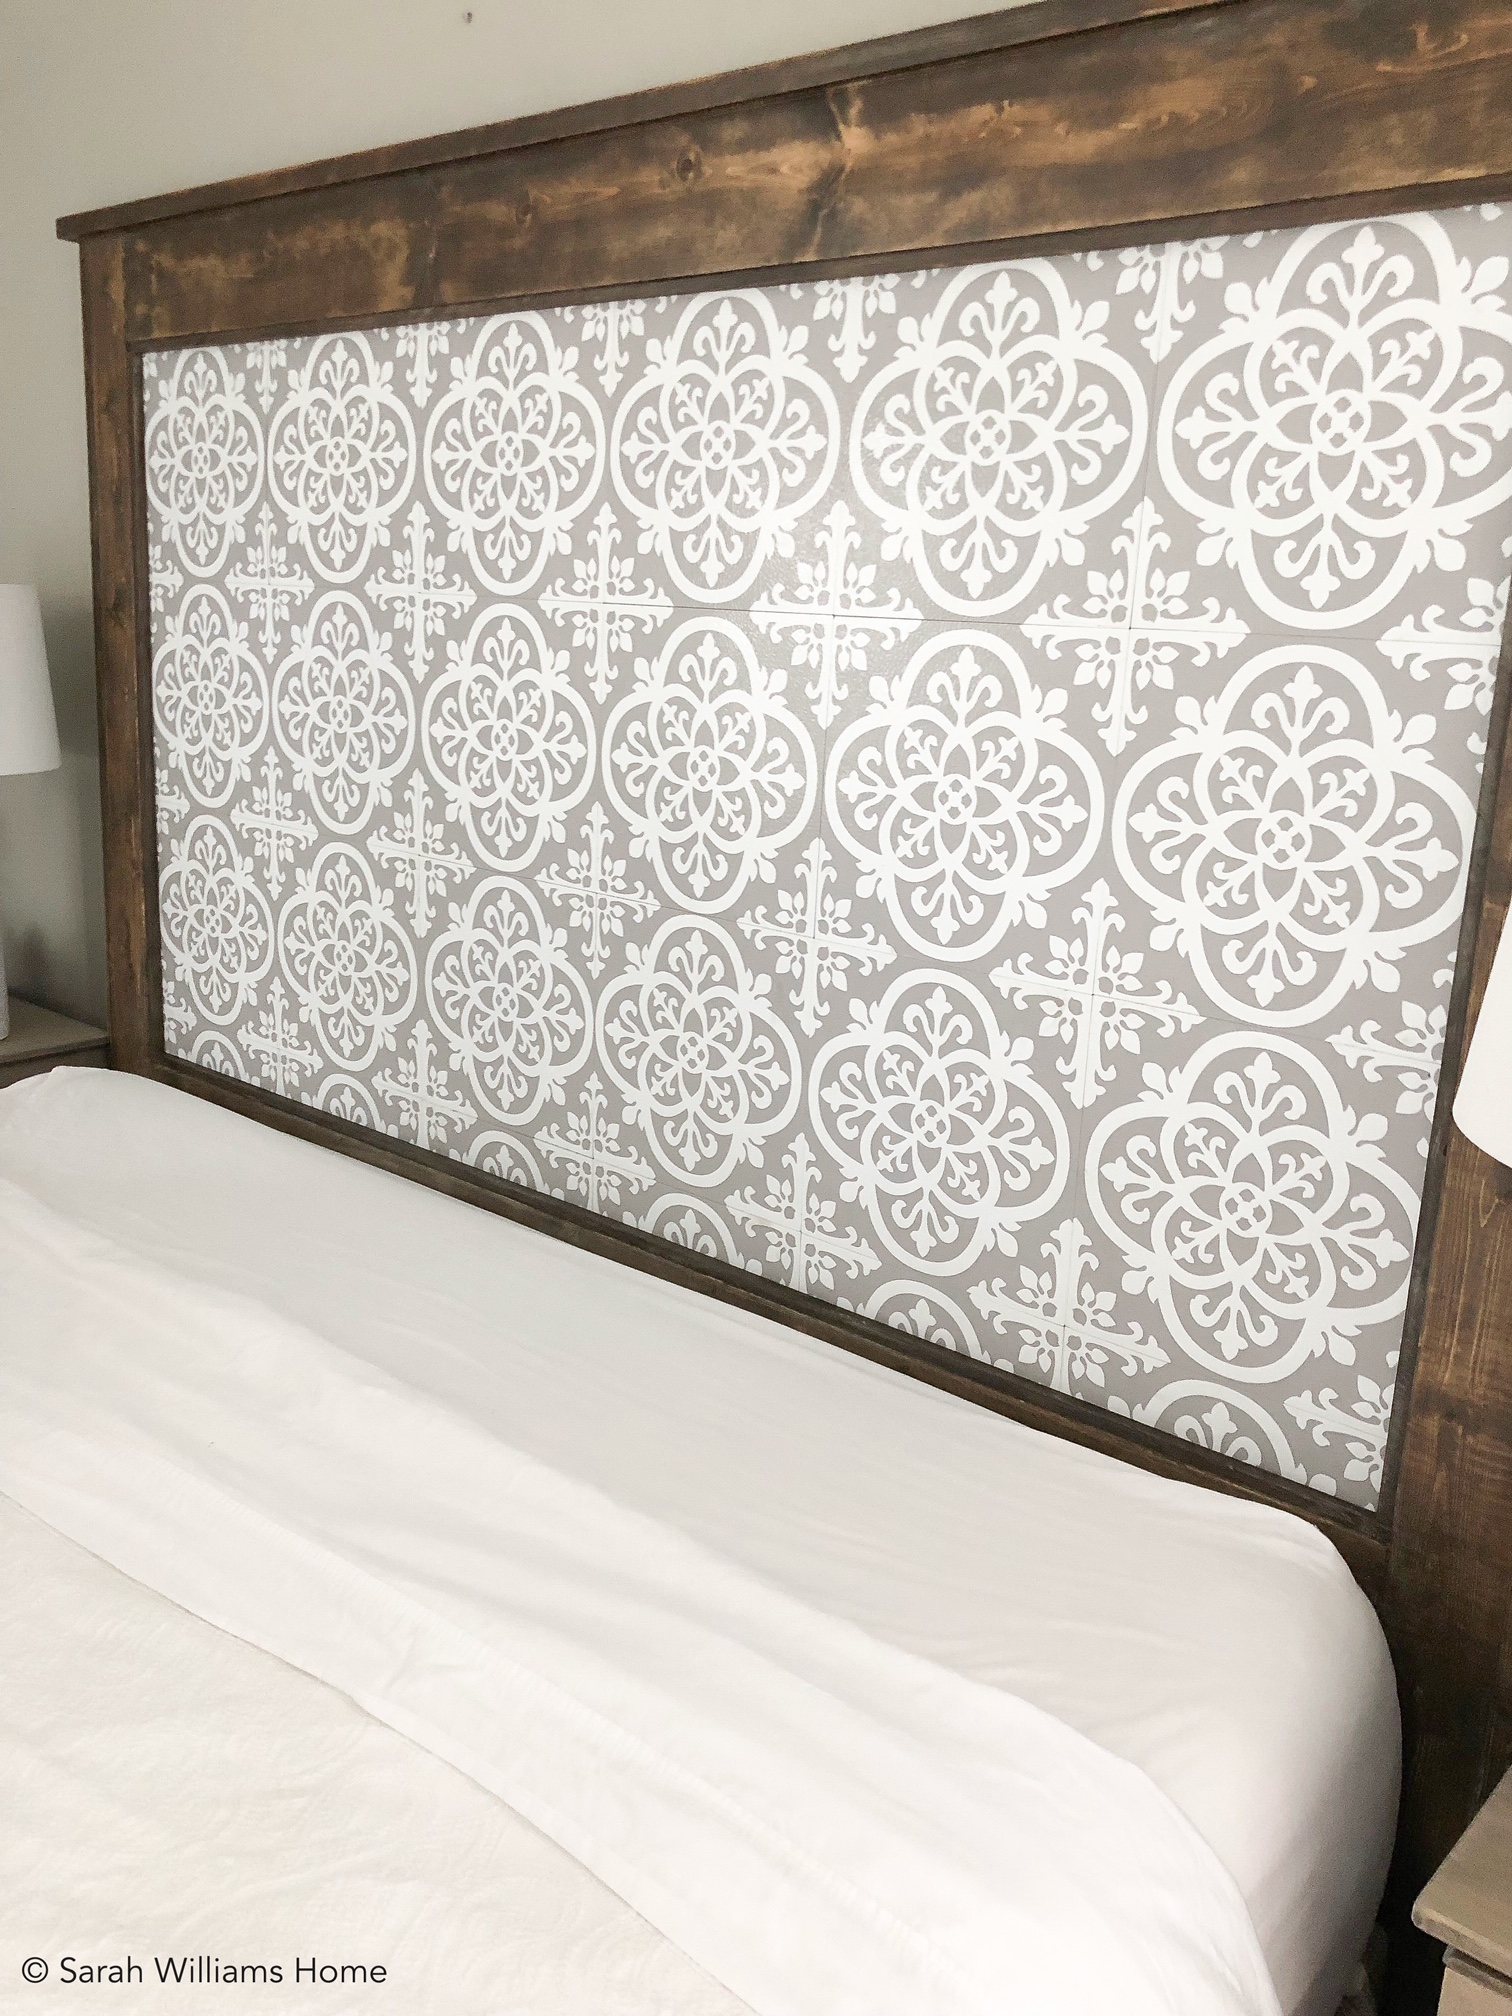 Diy King Sized Headboard With Peel And Stick Tile Diy King Size Headboard Diy King Headboard Stick On Tiles